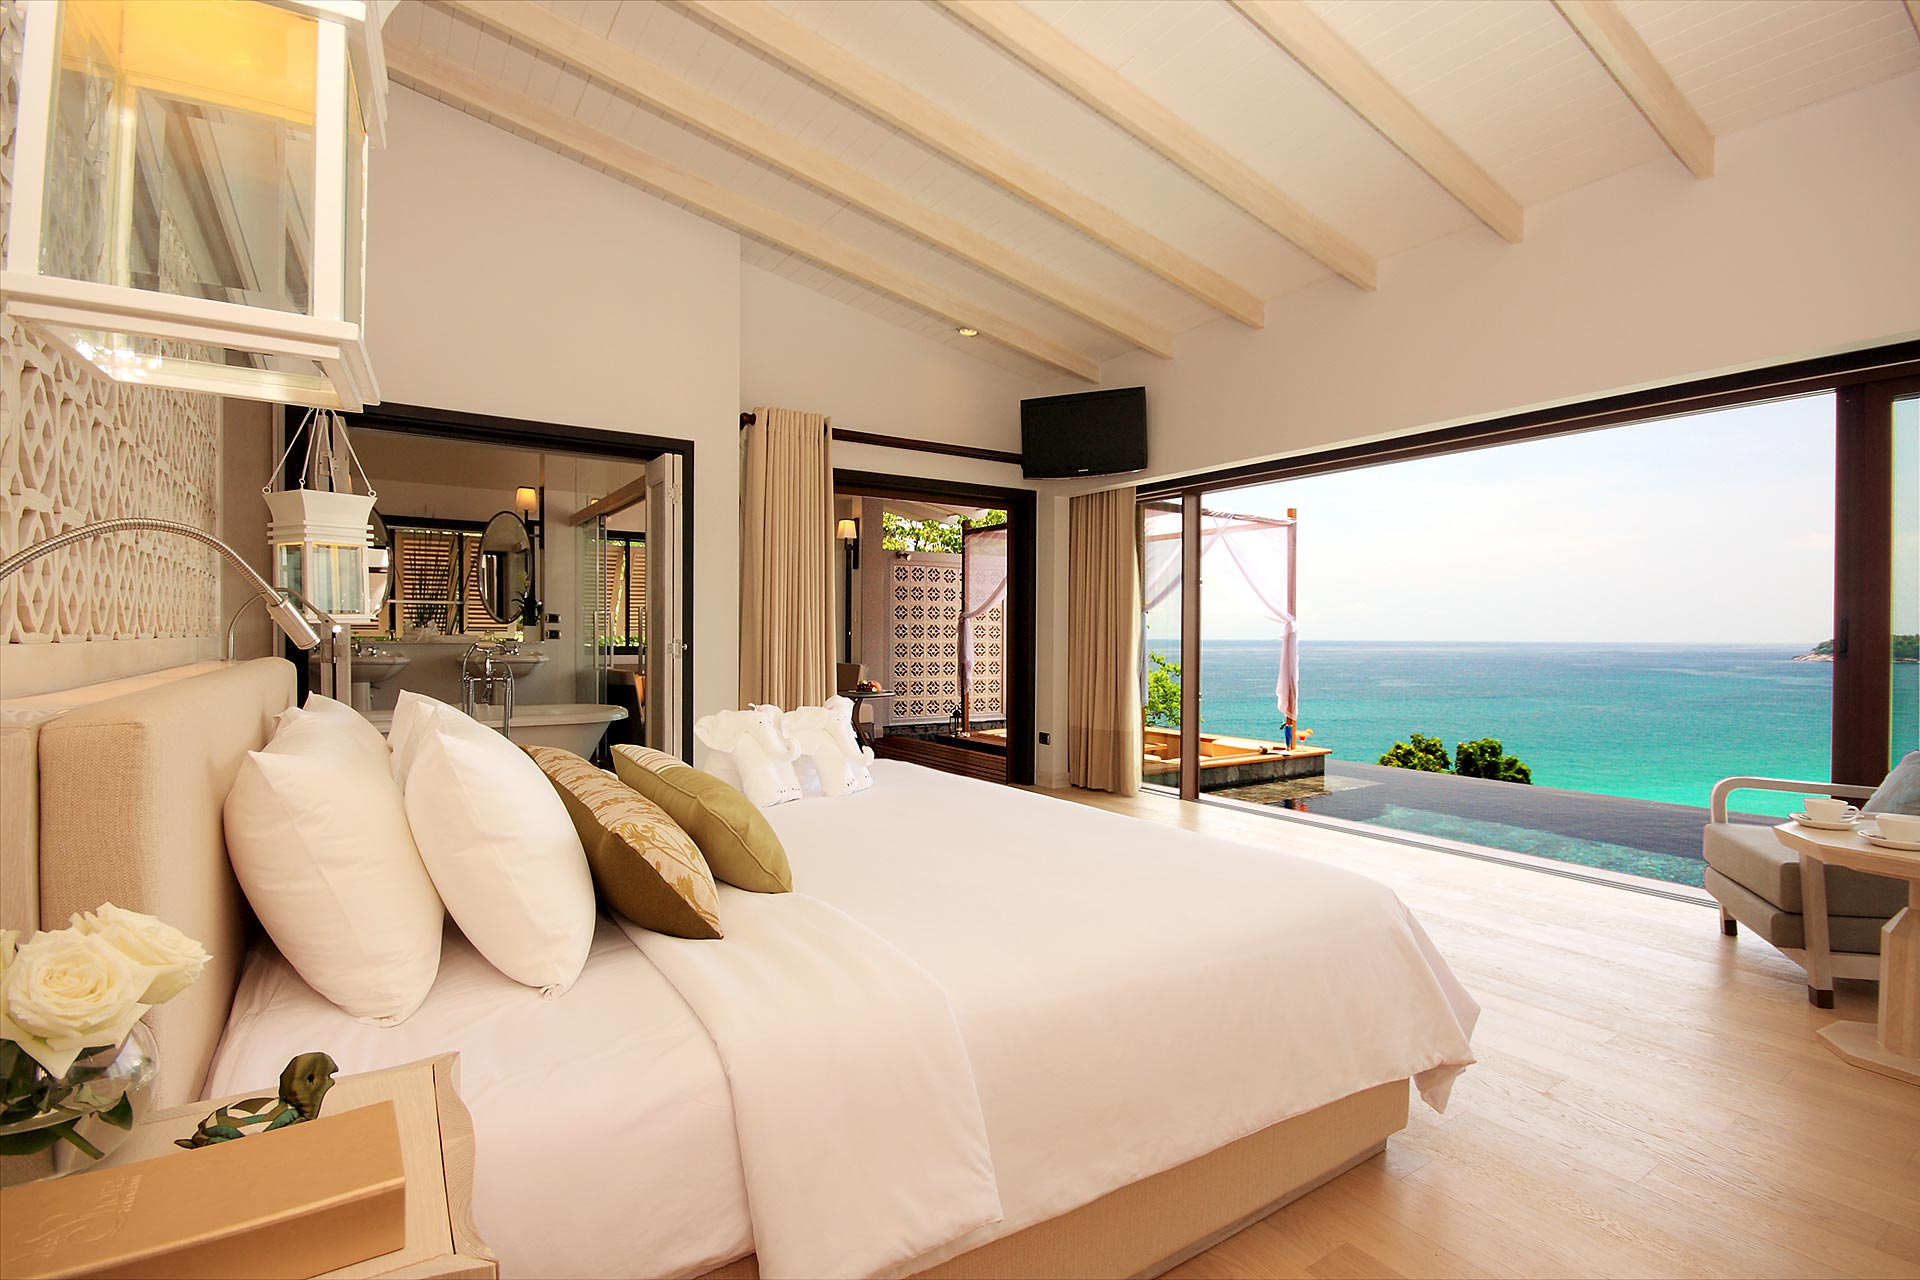 Window In Ceiling the greatest selection of bedrooms with floor-to-ceiling windows